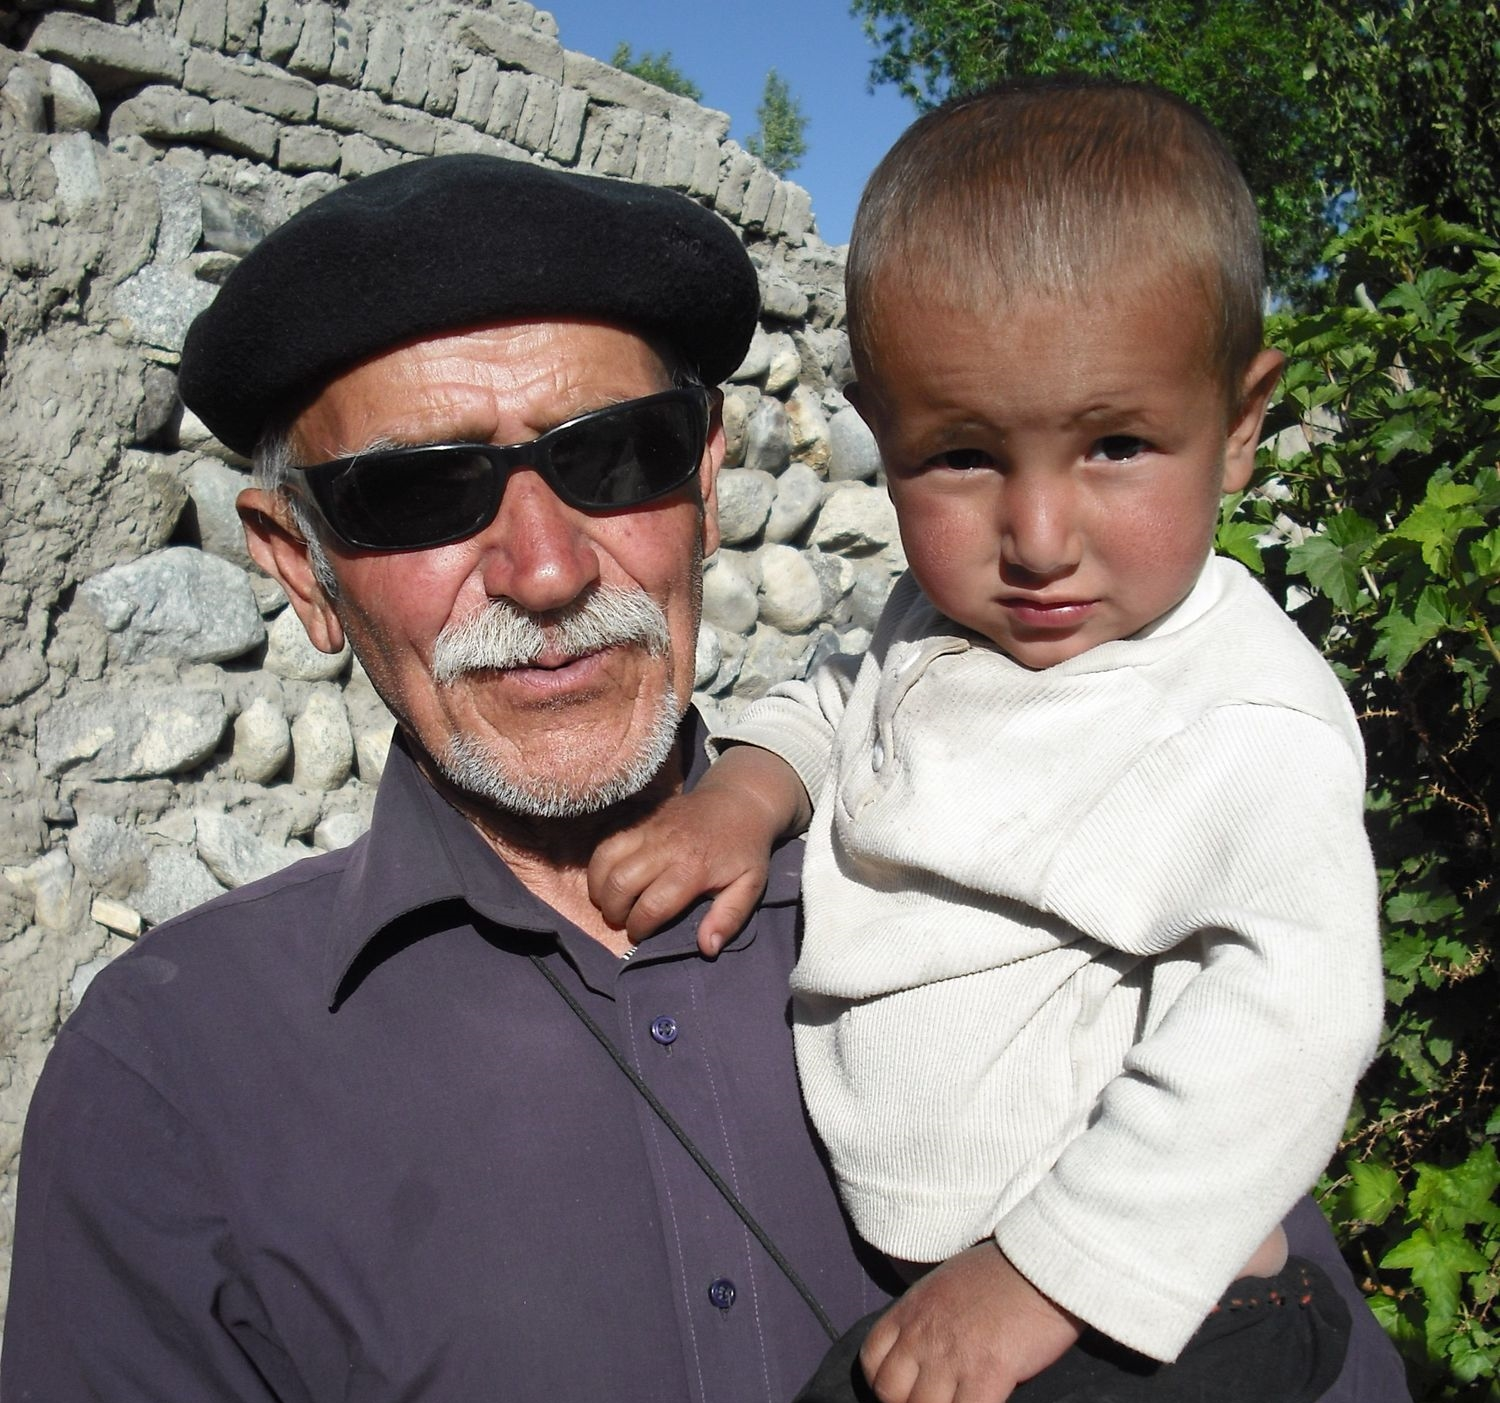 Shirinbek and an Afghan relative